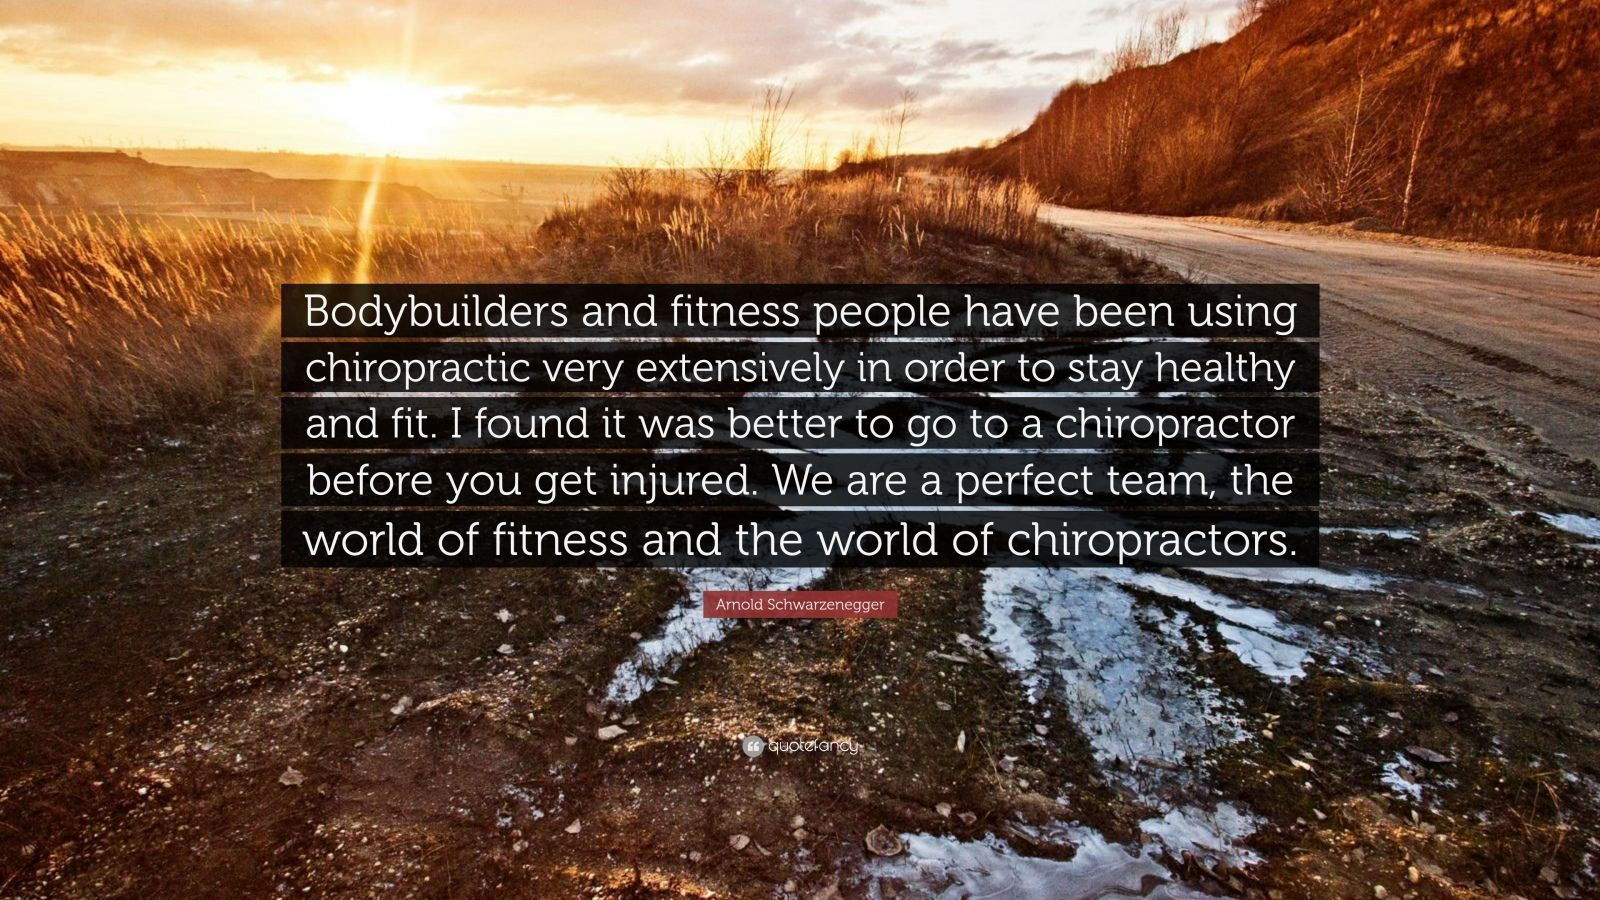 """Arnold Schwarzenegger Quote: """"Bodybuilders and fitness people have been using chiropractic very extensively in order to stay healthy and fit. I found it was better to go to a chiropractor before you get injured. We are a perfect team, the world of fitness and the world of chiropractors."""""""